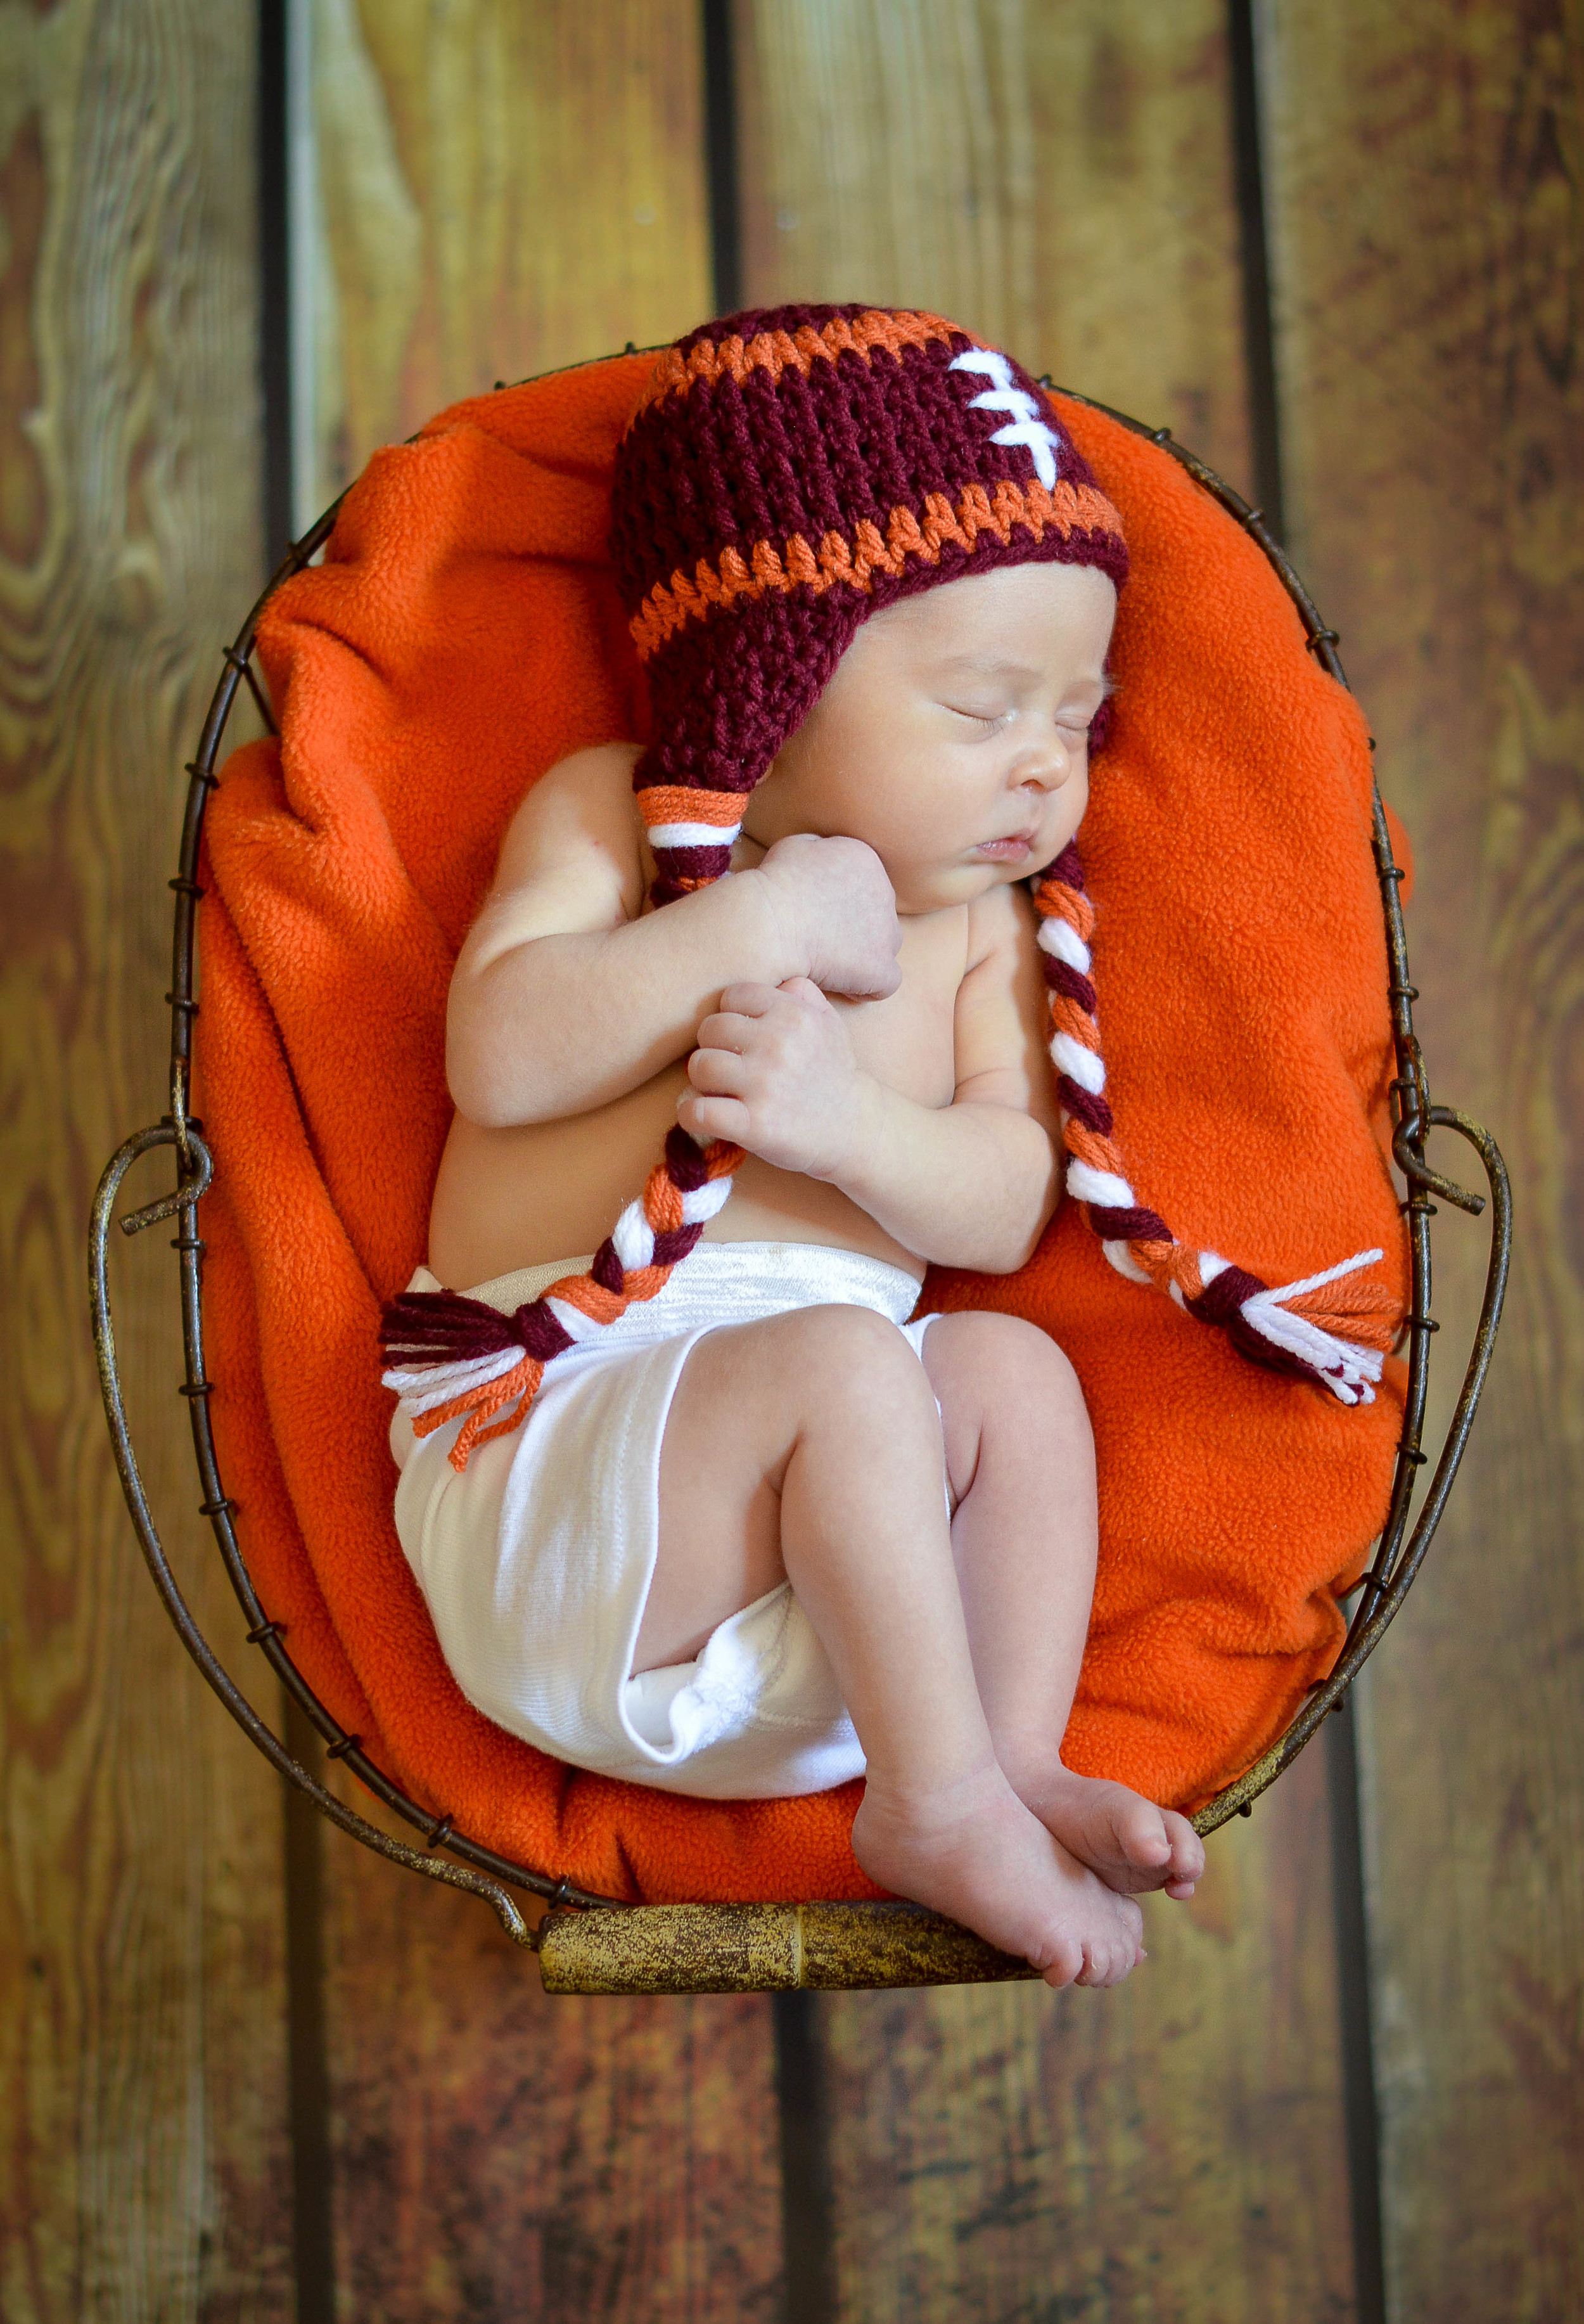 This litte guy was born to be a Hokie